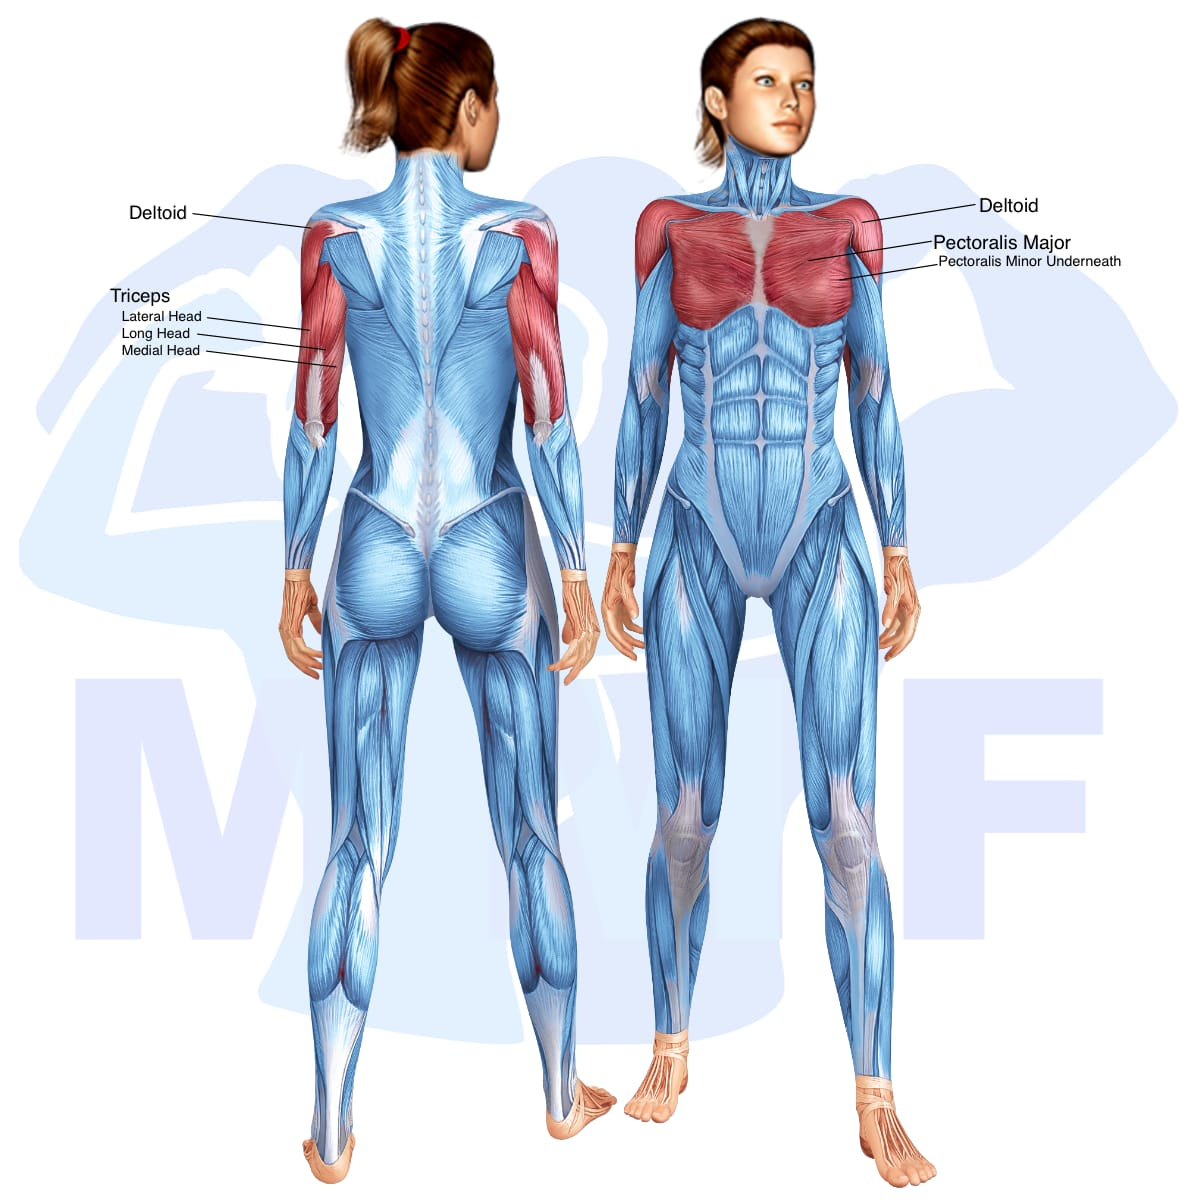 Skeletal muscle systems for a muscular woman, with muscles highlighted in red that are use during resistance band chest press.